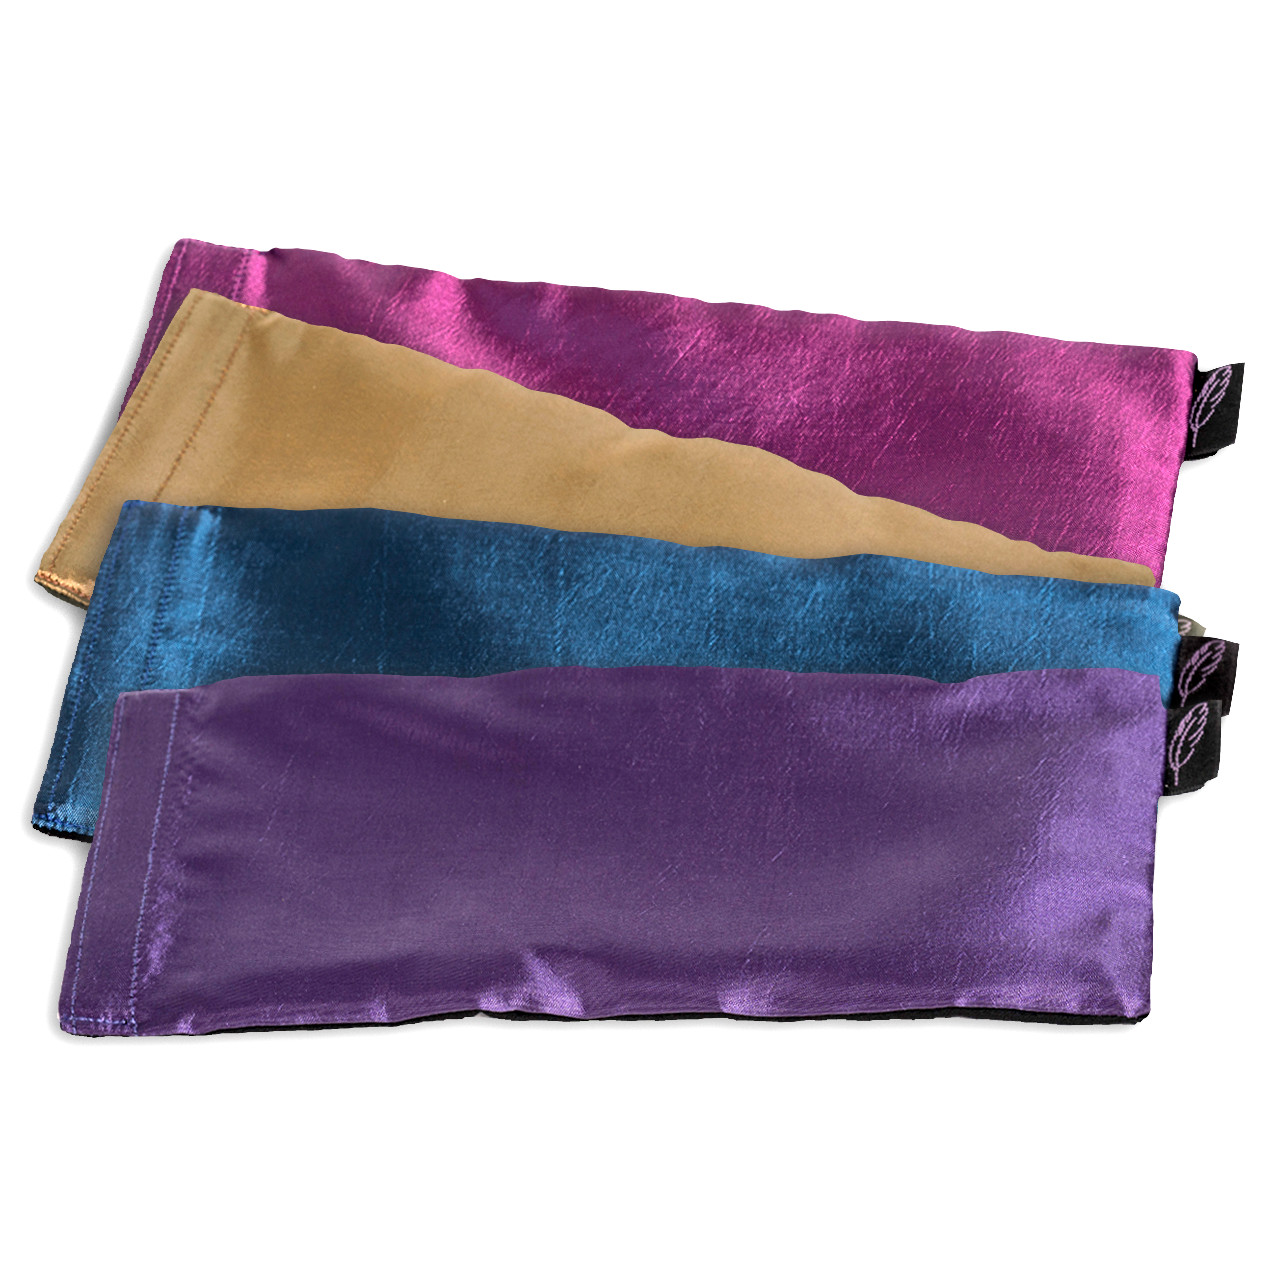 Silk Cover for the Eye Pillow